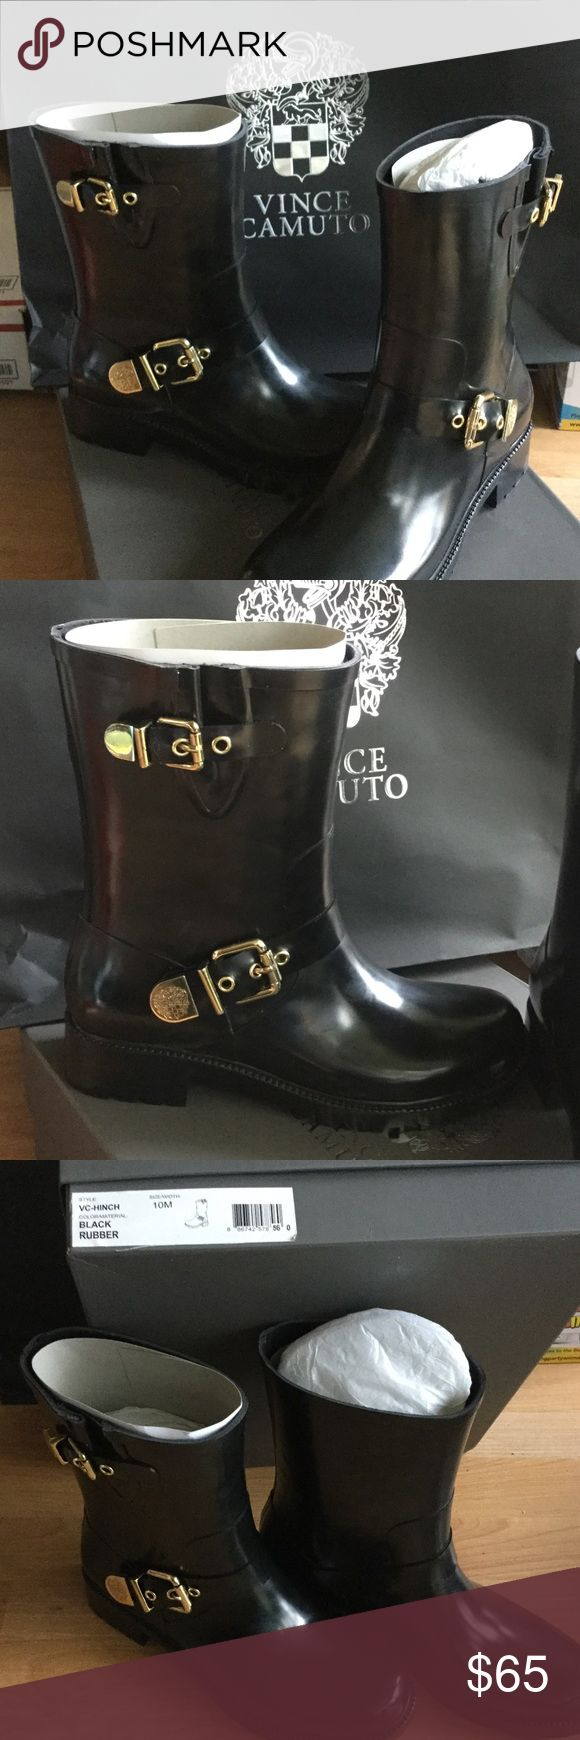 Vince Camuto Black Hinch Rubber Rain Boot NIB Beautiful brand-new size 10 Vince Camuto black rubber rain boots . very stylish Vince Camuto Shoes Winter & Rain Boots